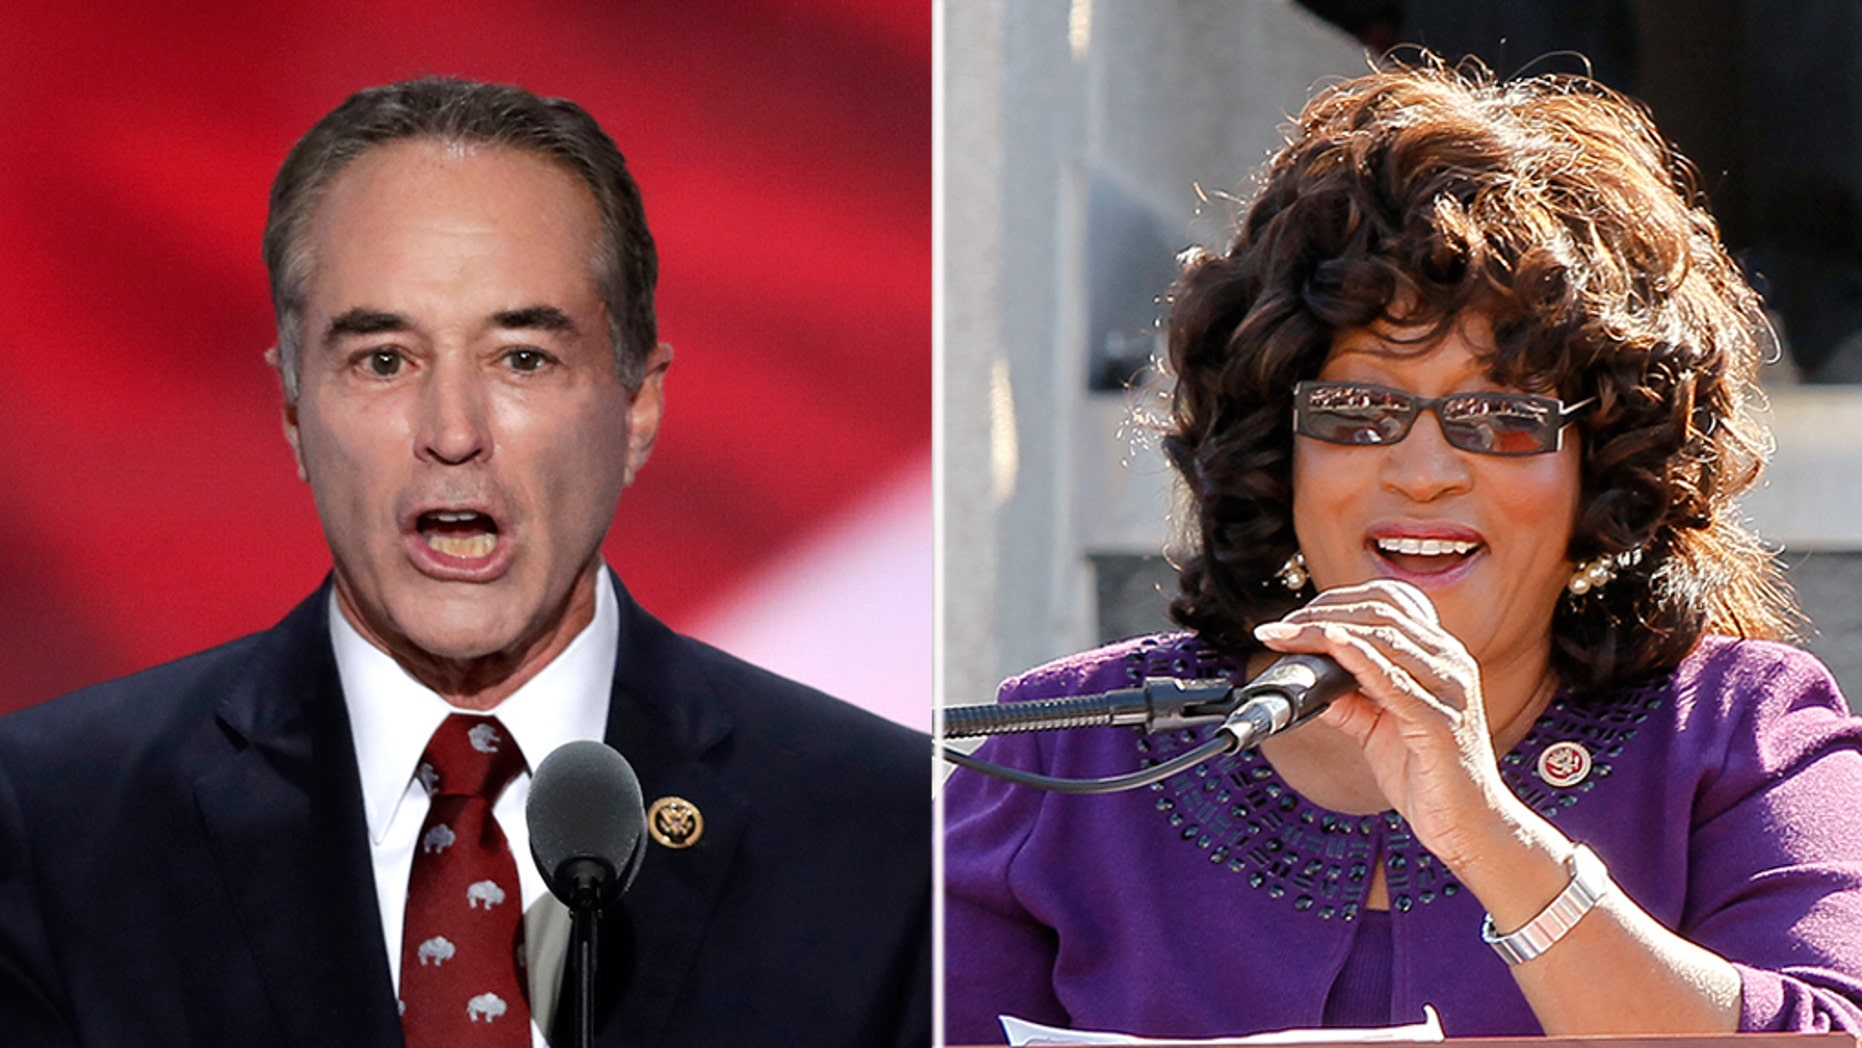 Mainstream media spent more time on the arrest of Rep. Chris Collins, R-N.Y. in one day than it did in a year where Rep. Corrine Brown, D-Fla., was concerned.